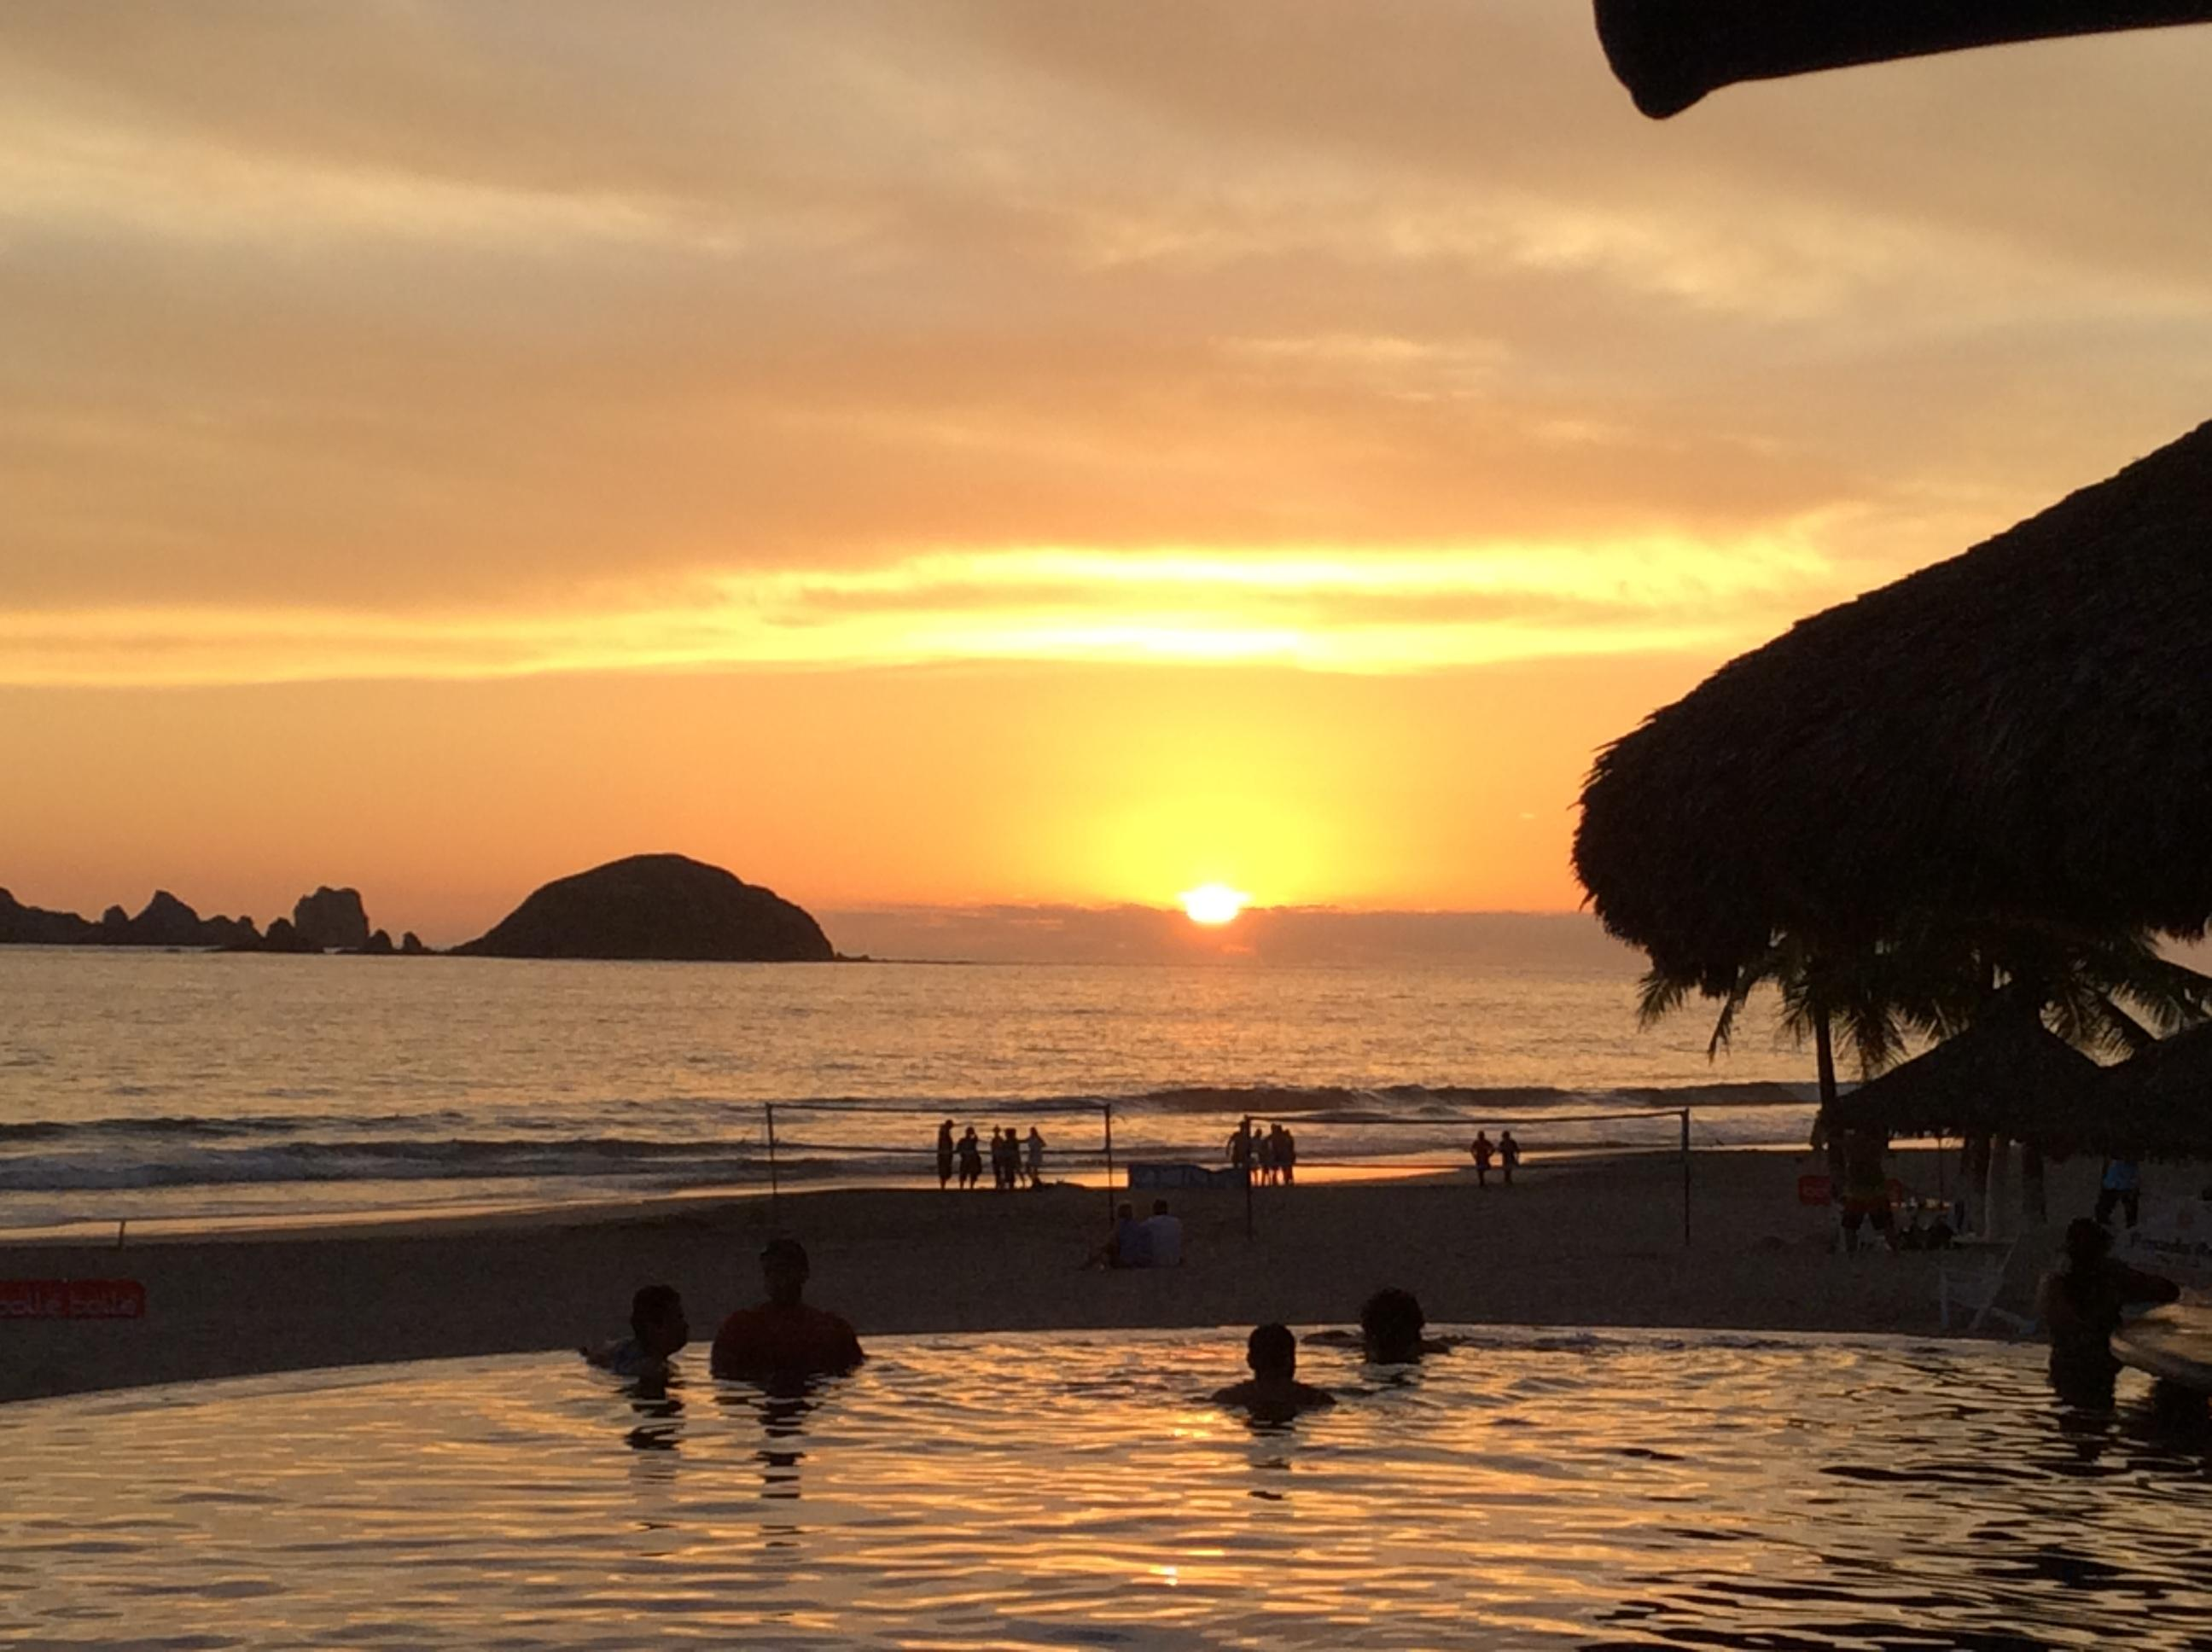 Sunset over the pool and ocean